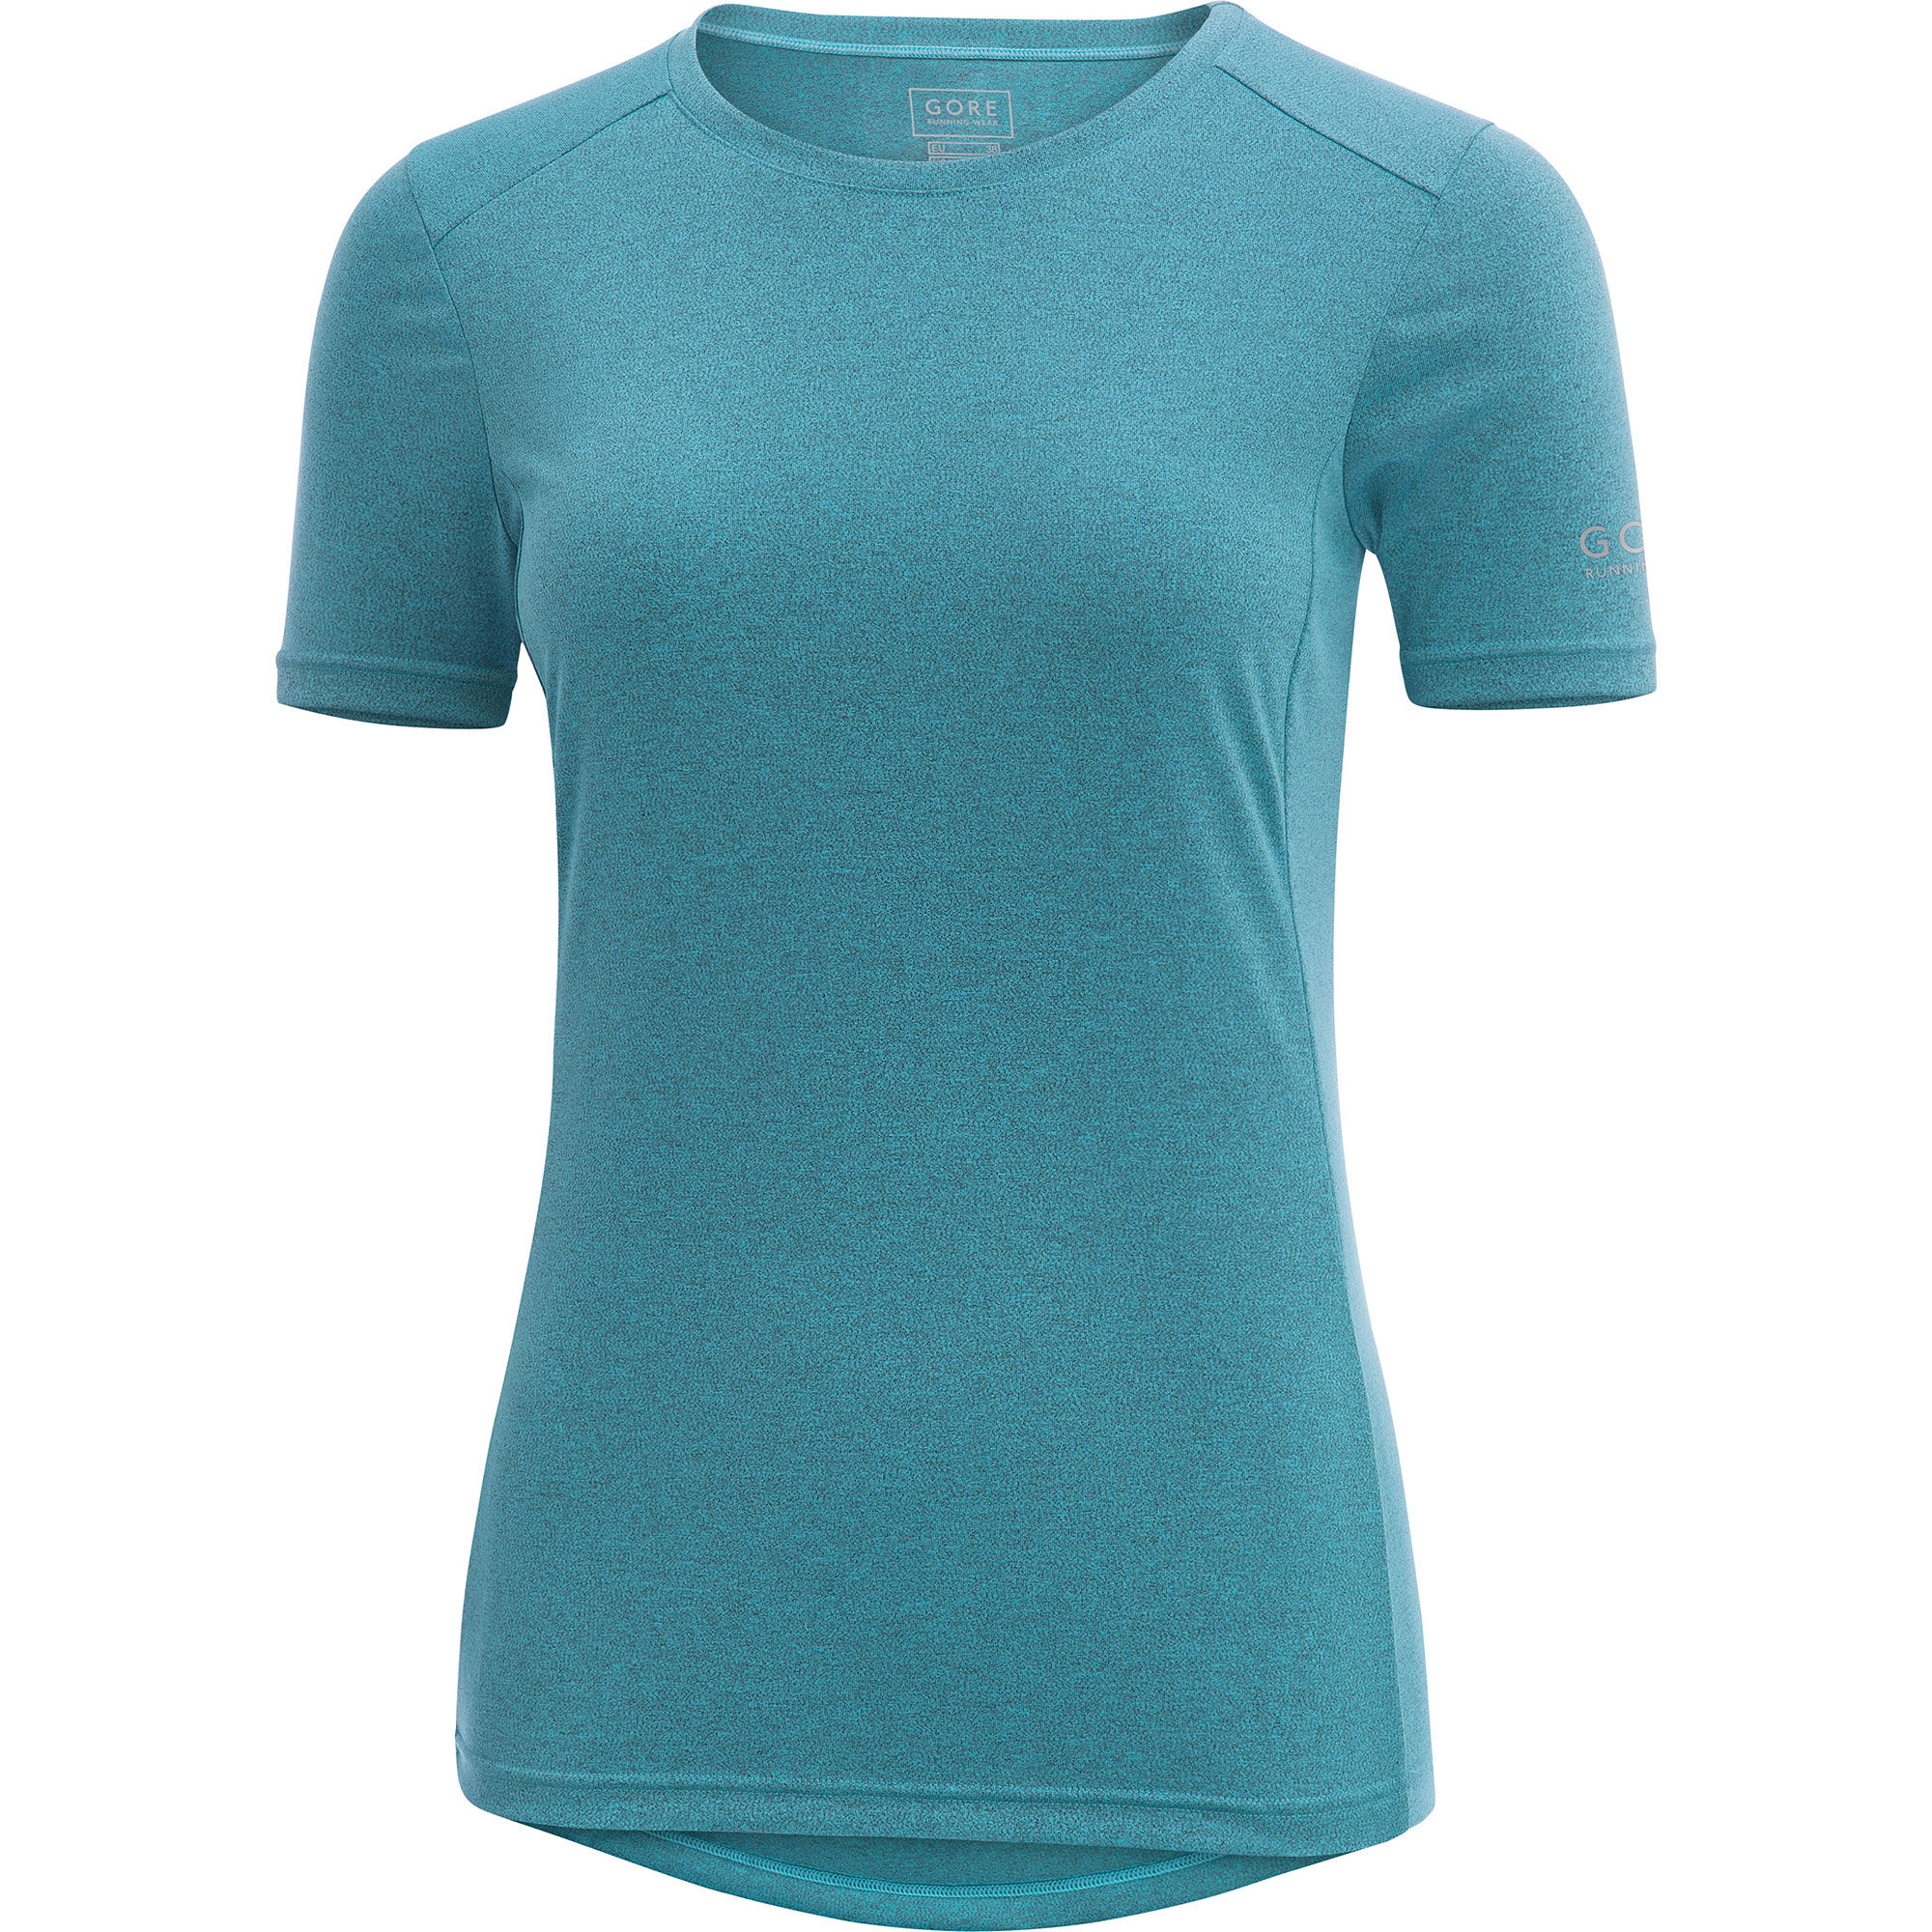 Gore Essential Lady Shirt in Blau